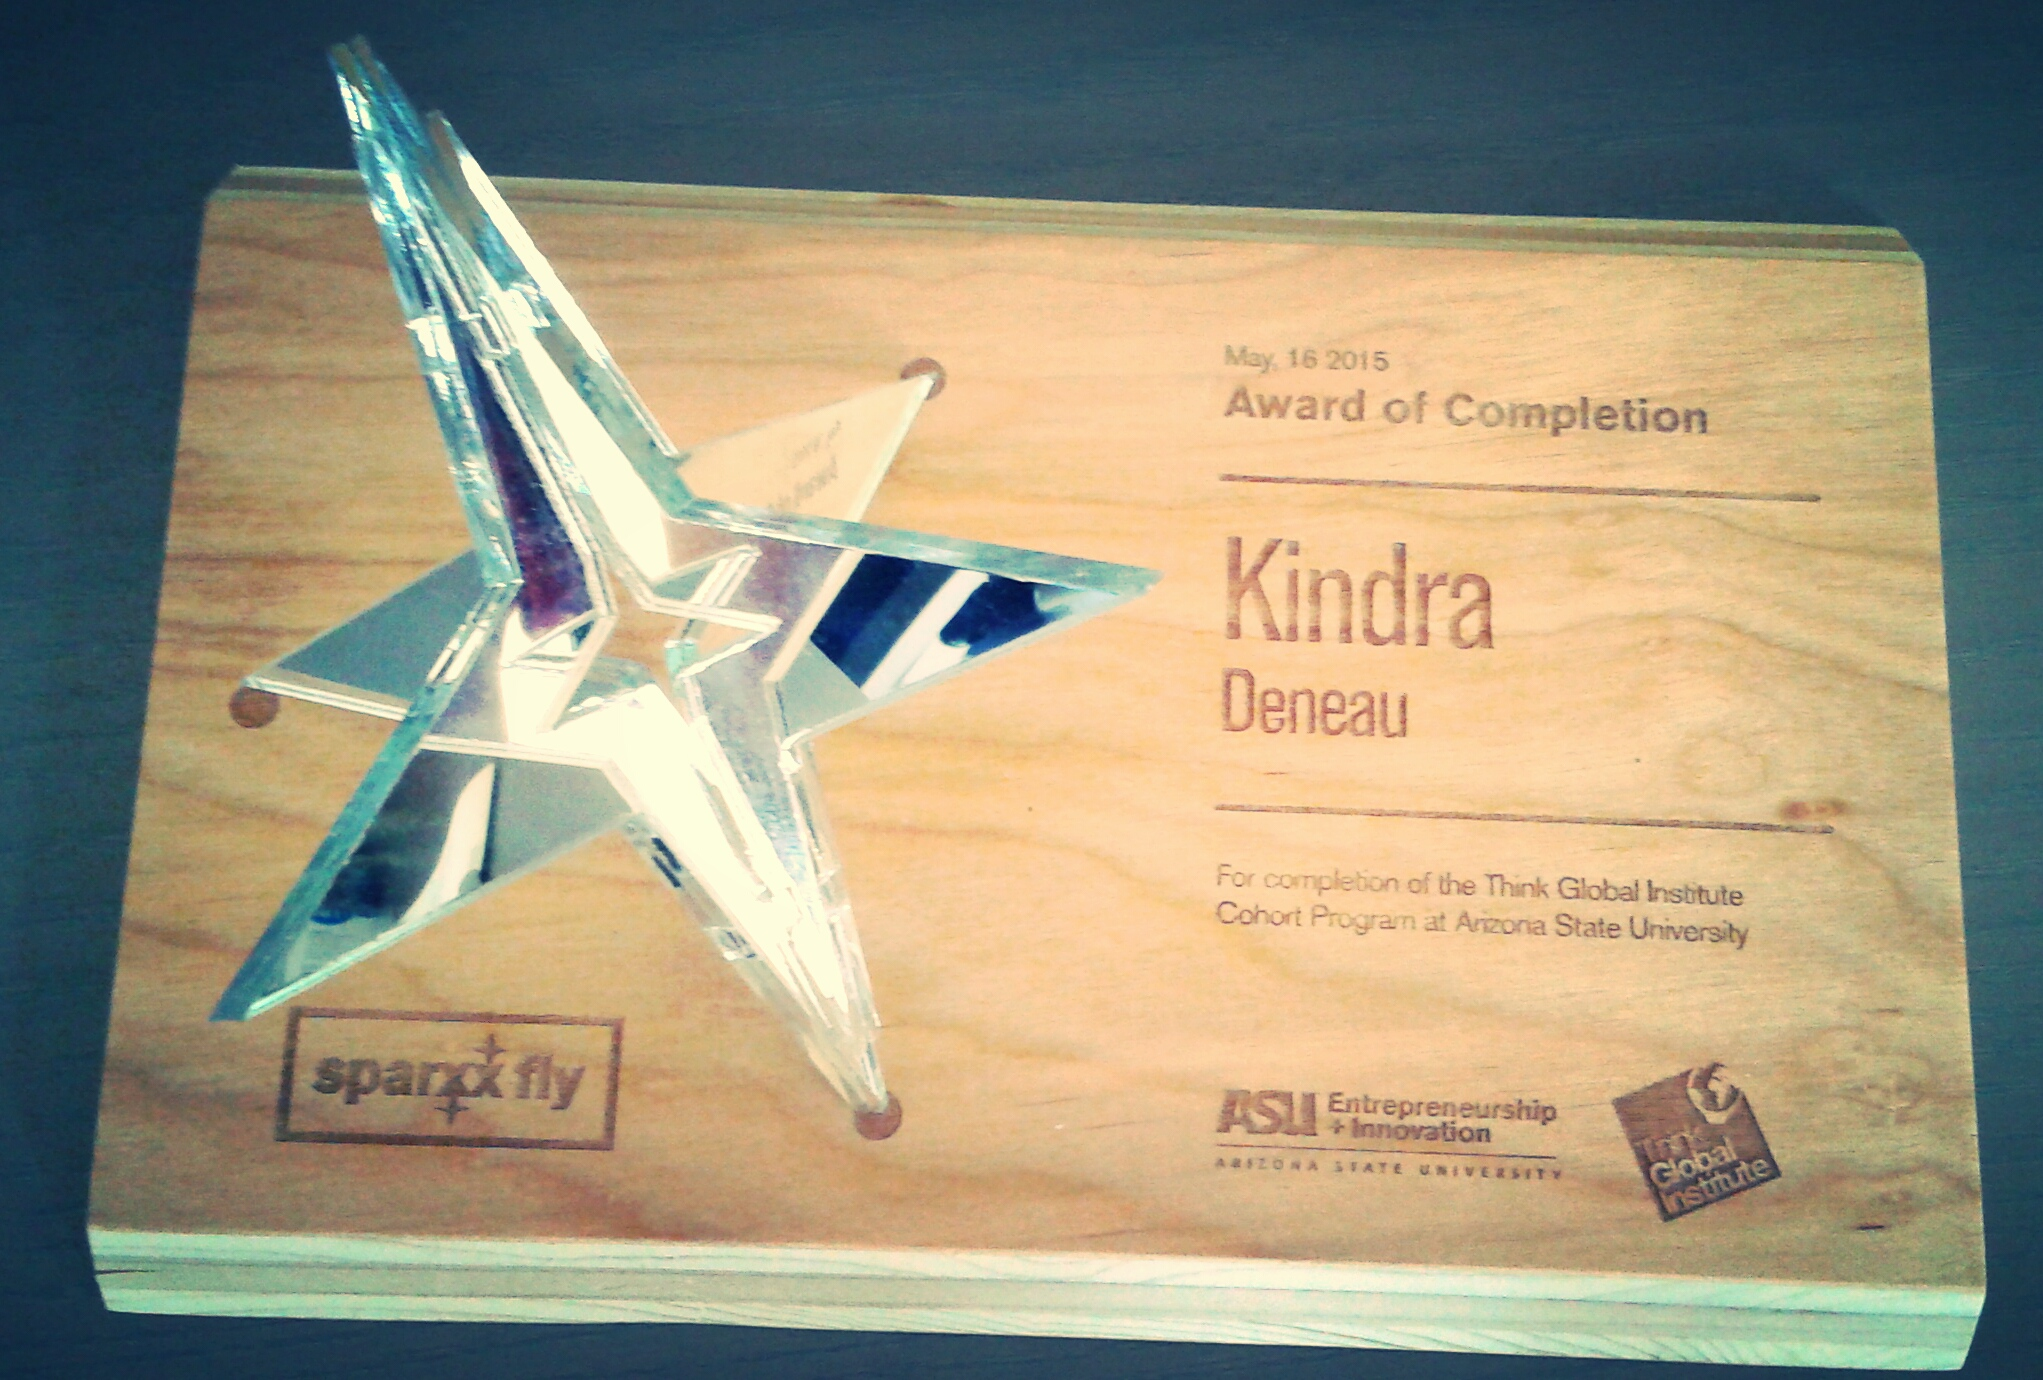 On May 16, 2015 Kindra Deneau was honored at Sparxx Fly, an Entrepreneurship + Innovation Event hosted by Arizona State University.  More details can be found  here .  Congratulations, Kindra!